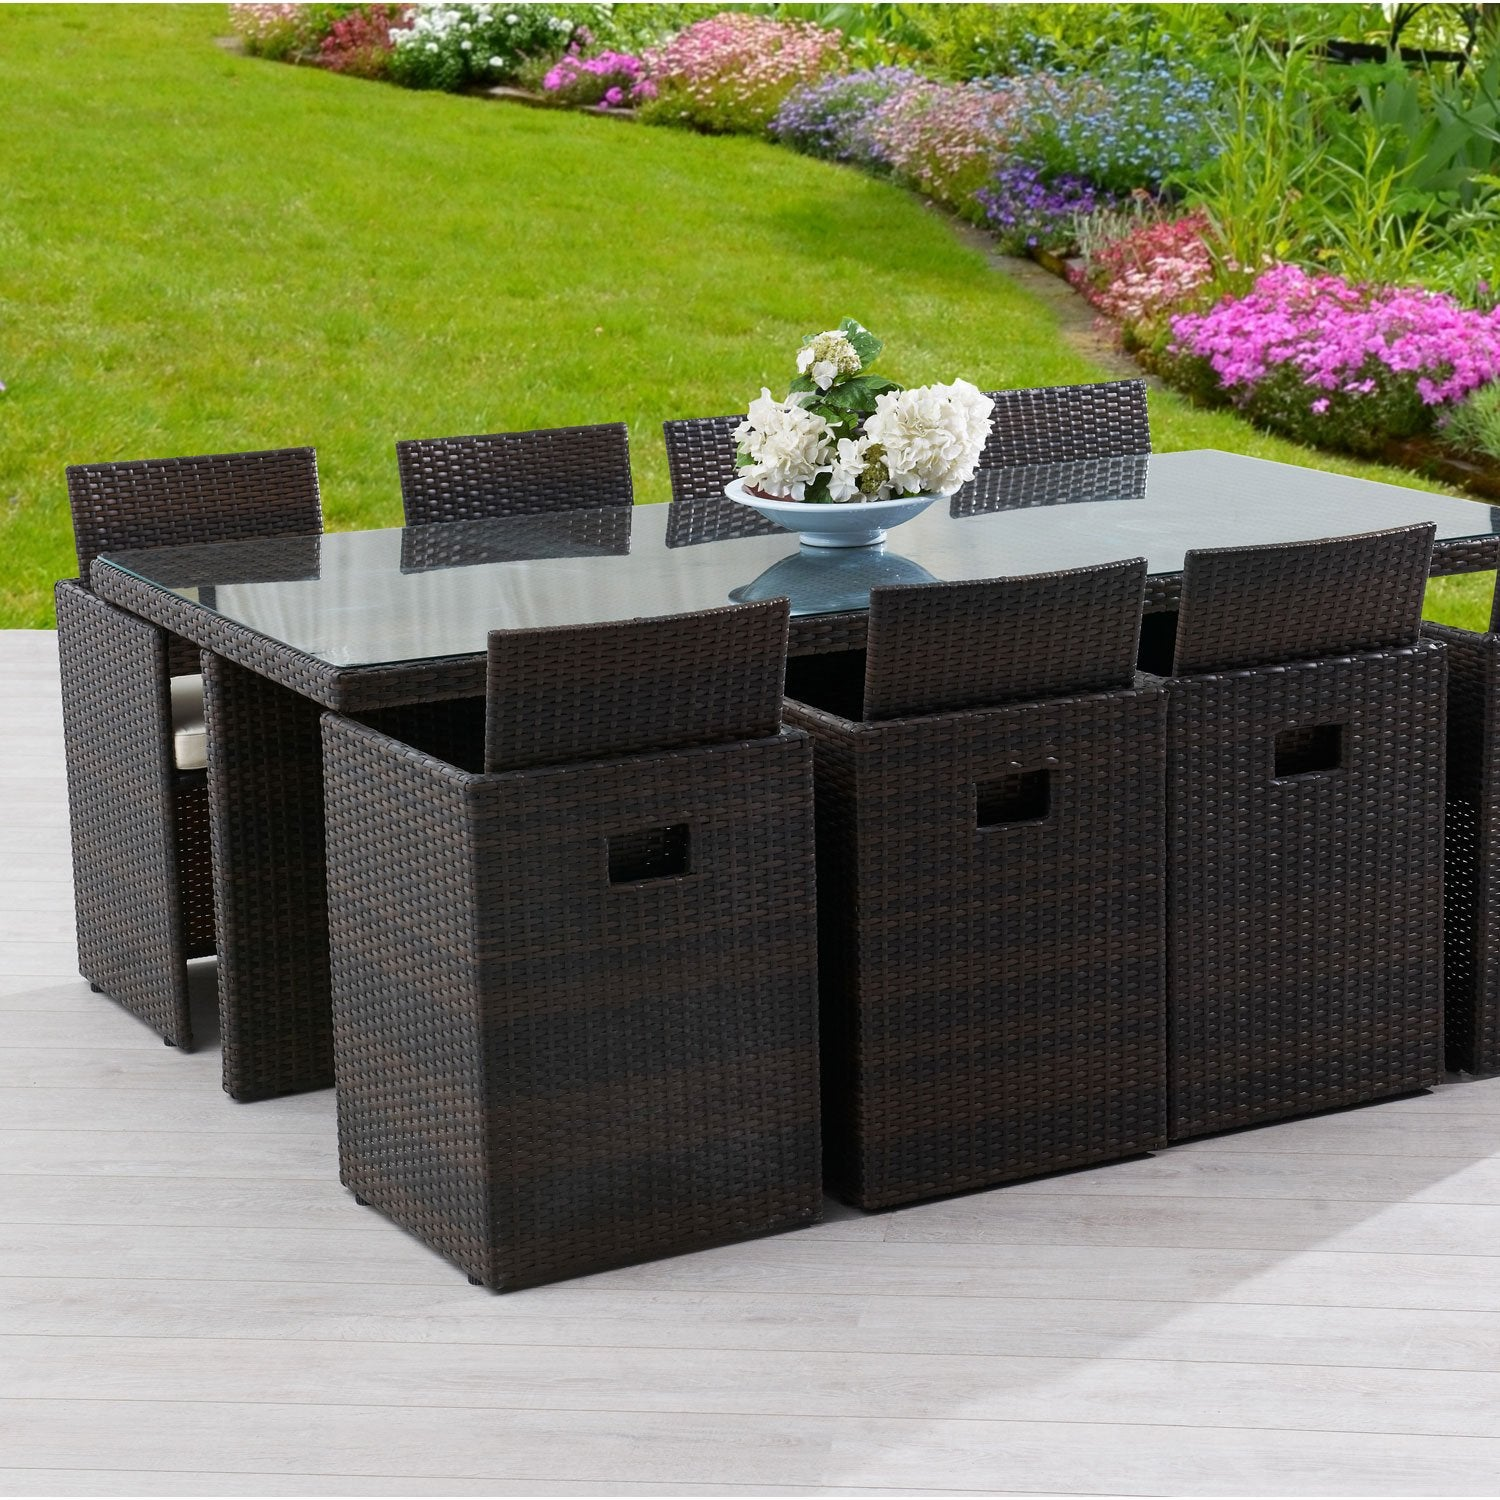 Salon de jardin encastrable r sine tress e marron 1 table for Mobilier exterieur resine tressee